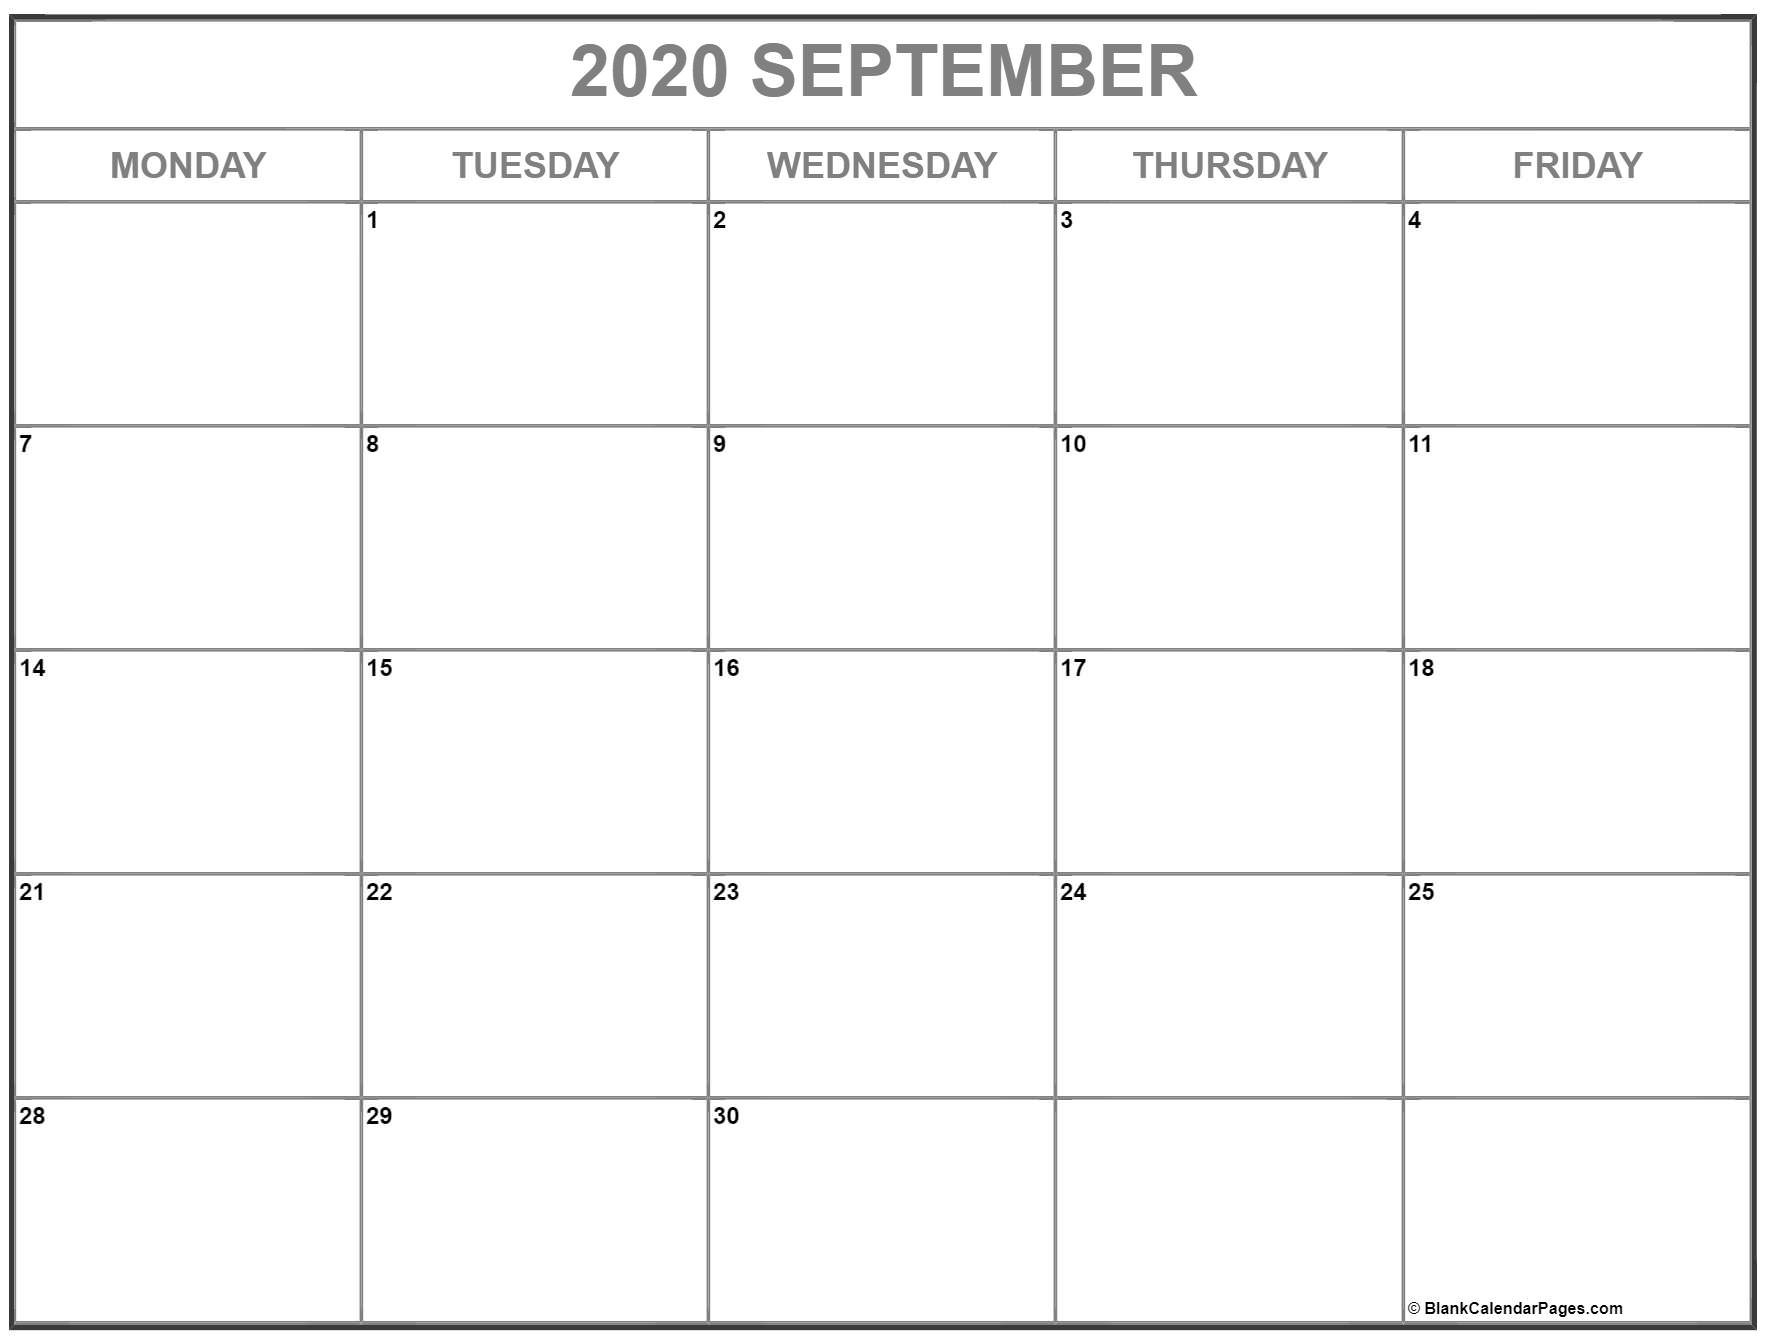 September 2020 Monday Calendar | Monday To Sunday Printable Calendar Saturday Through Friday